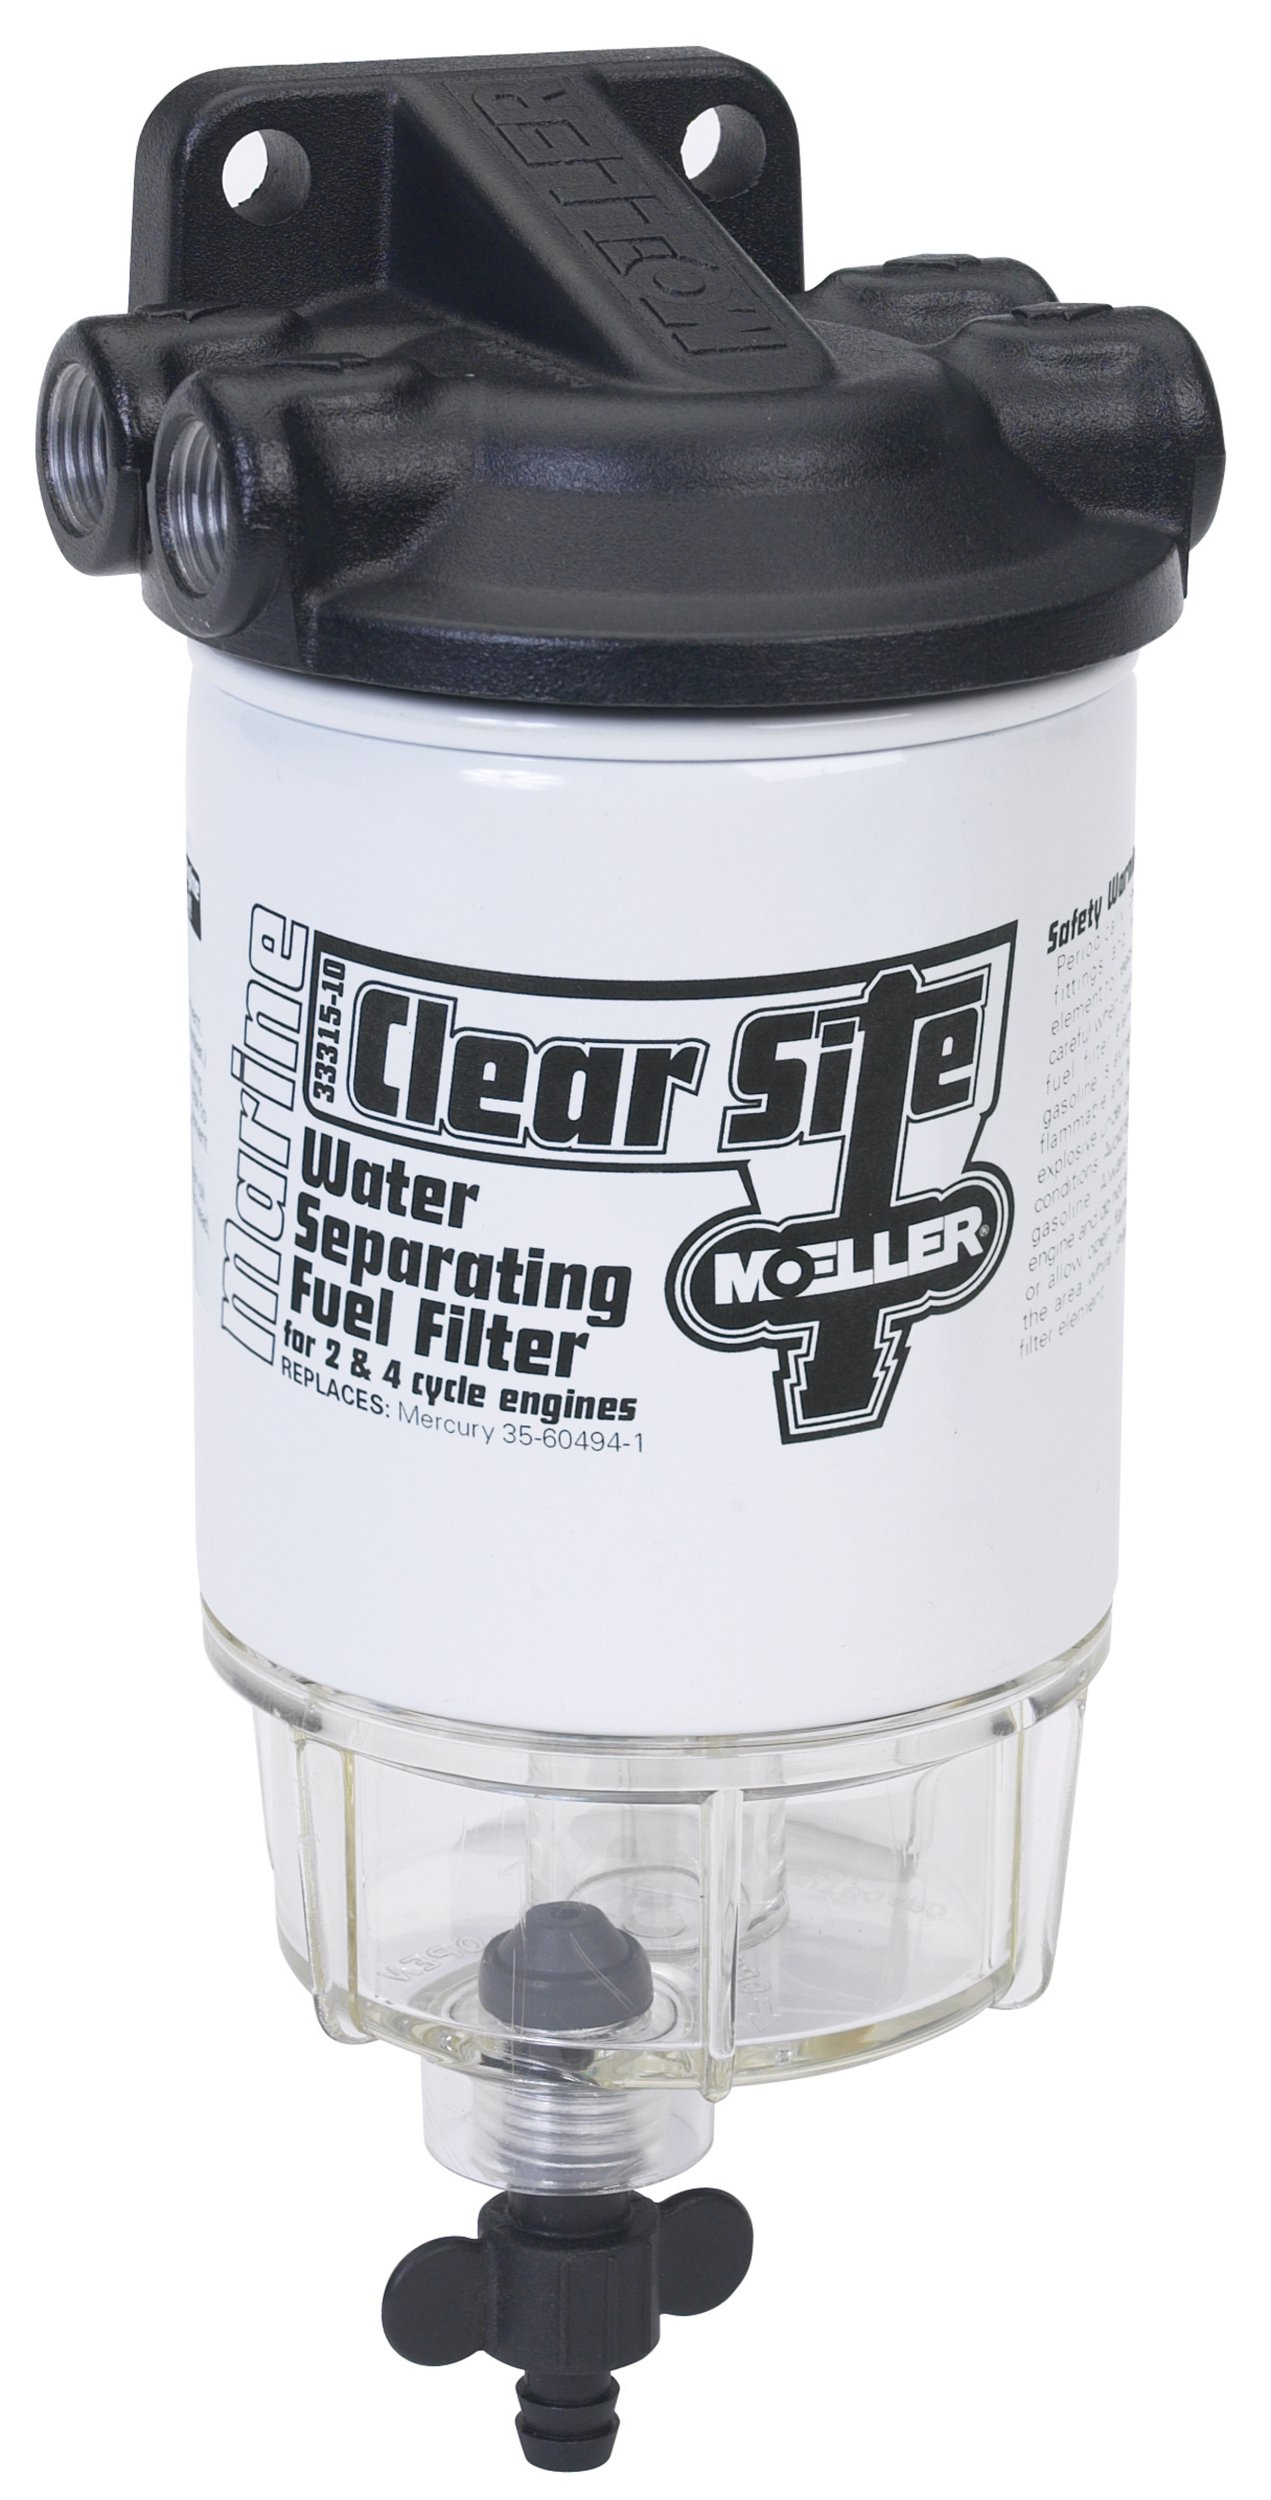 Moeller Clear Site Water Separating Fuel Filter System (3/8'' NPT, Aluminum)